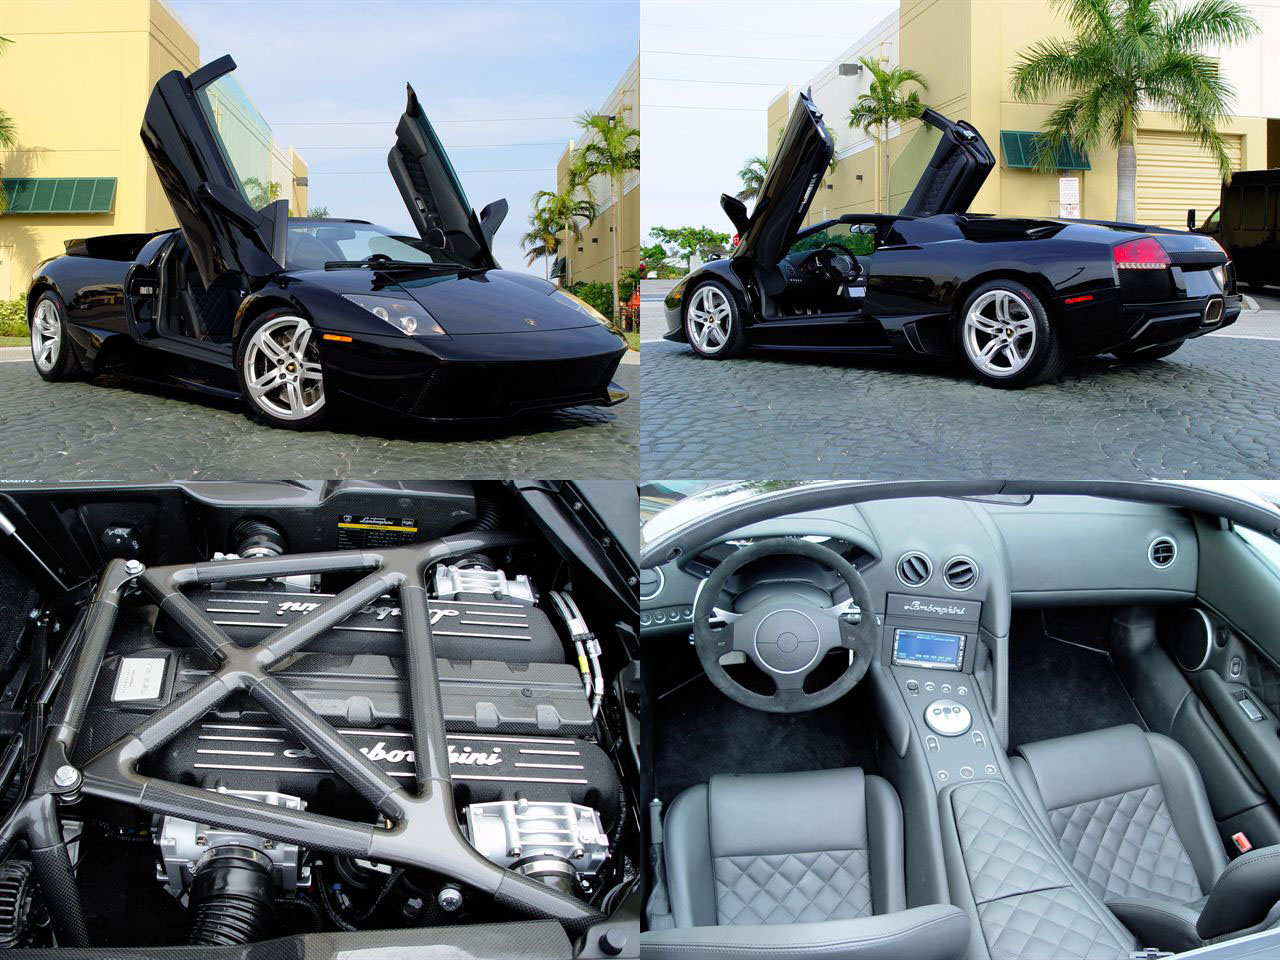 Murcielago LP640 Roadster 1/4 mile Drag Racing trap speed 0-60